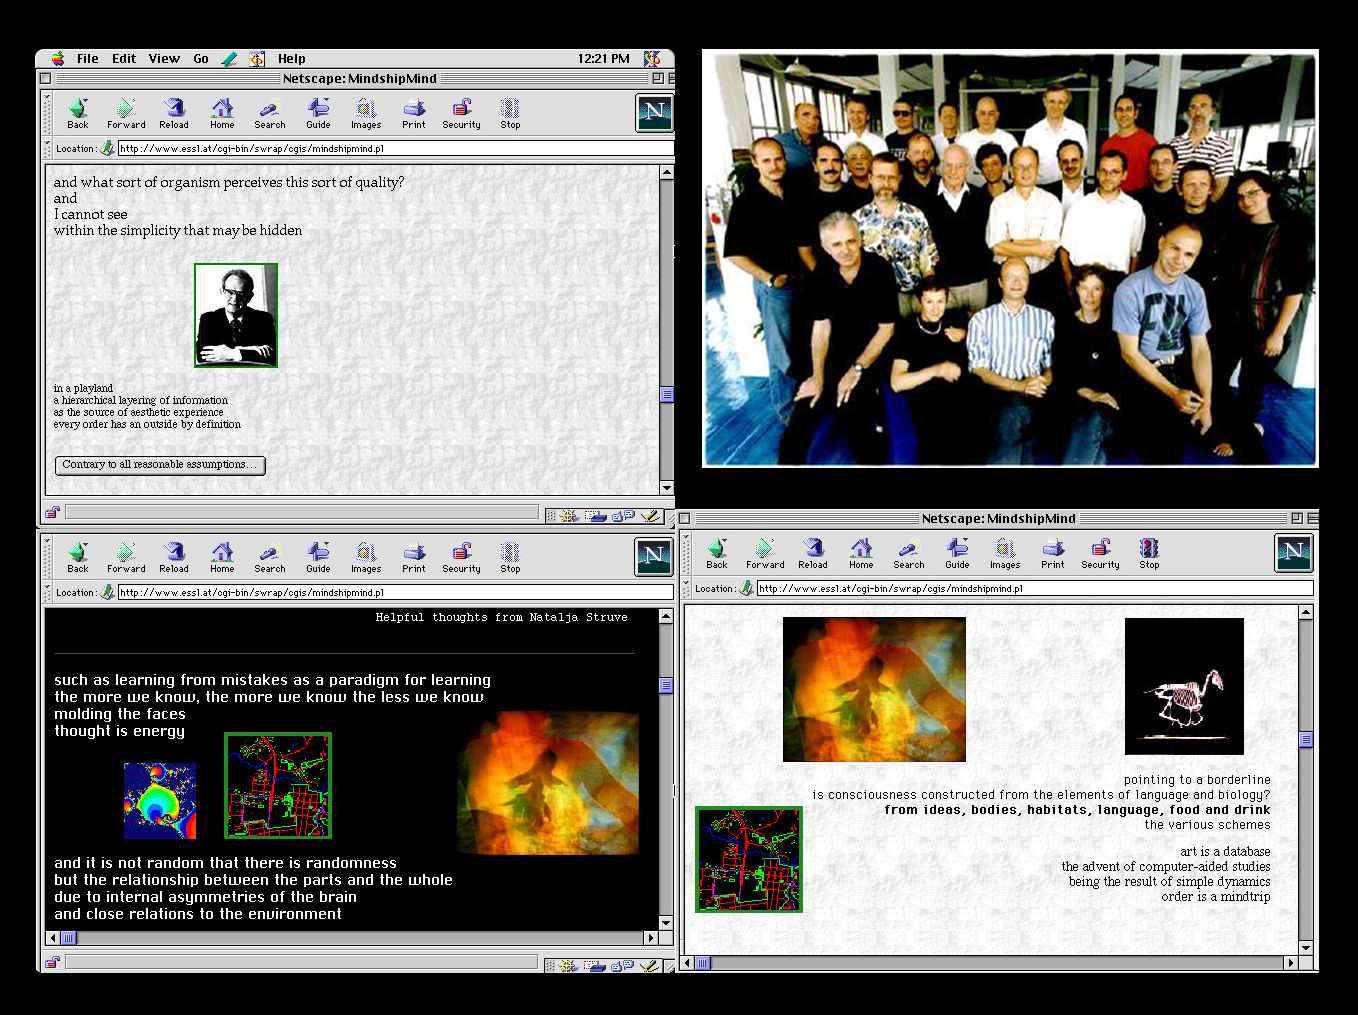 Figure 1. Three still frames from Mindshipmind, a never ending multimedia text on art and science, running in the Netscape browser in 1997. Upper right, portrait of the Mindship participants in Copenhagen, Denmark in August of 1996. Tor Nørretranders is seated in the front, middle. Vibeke Sørensen is seated next to him (front row, second from right).